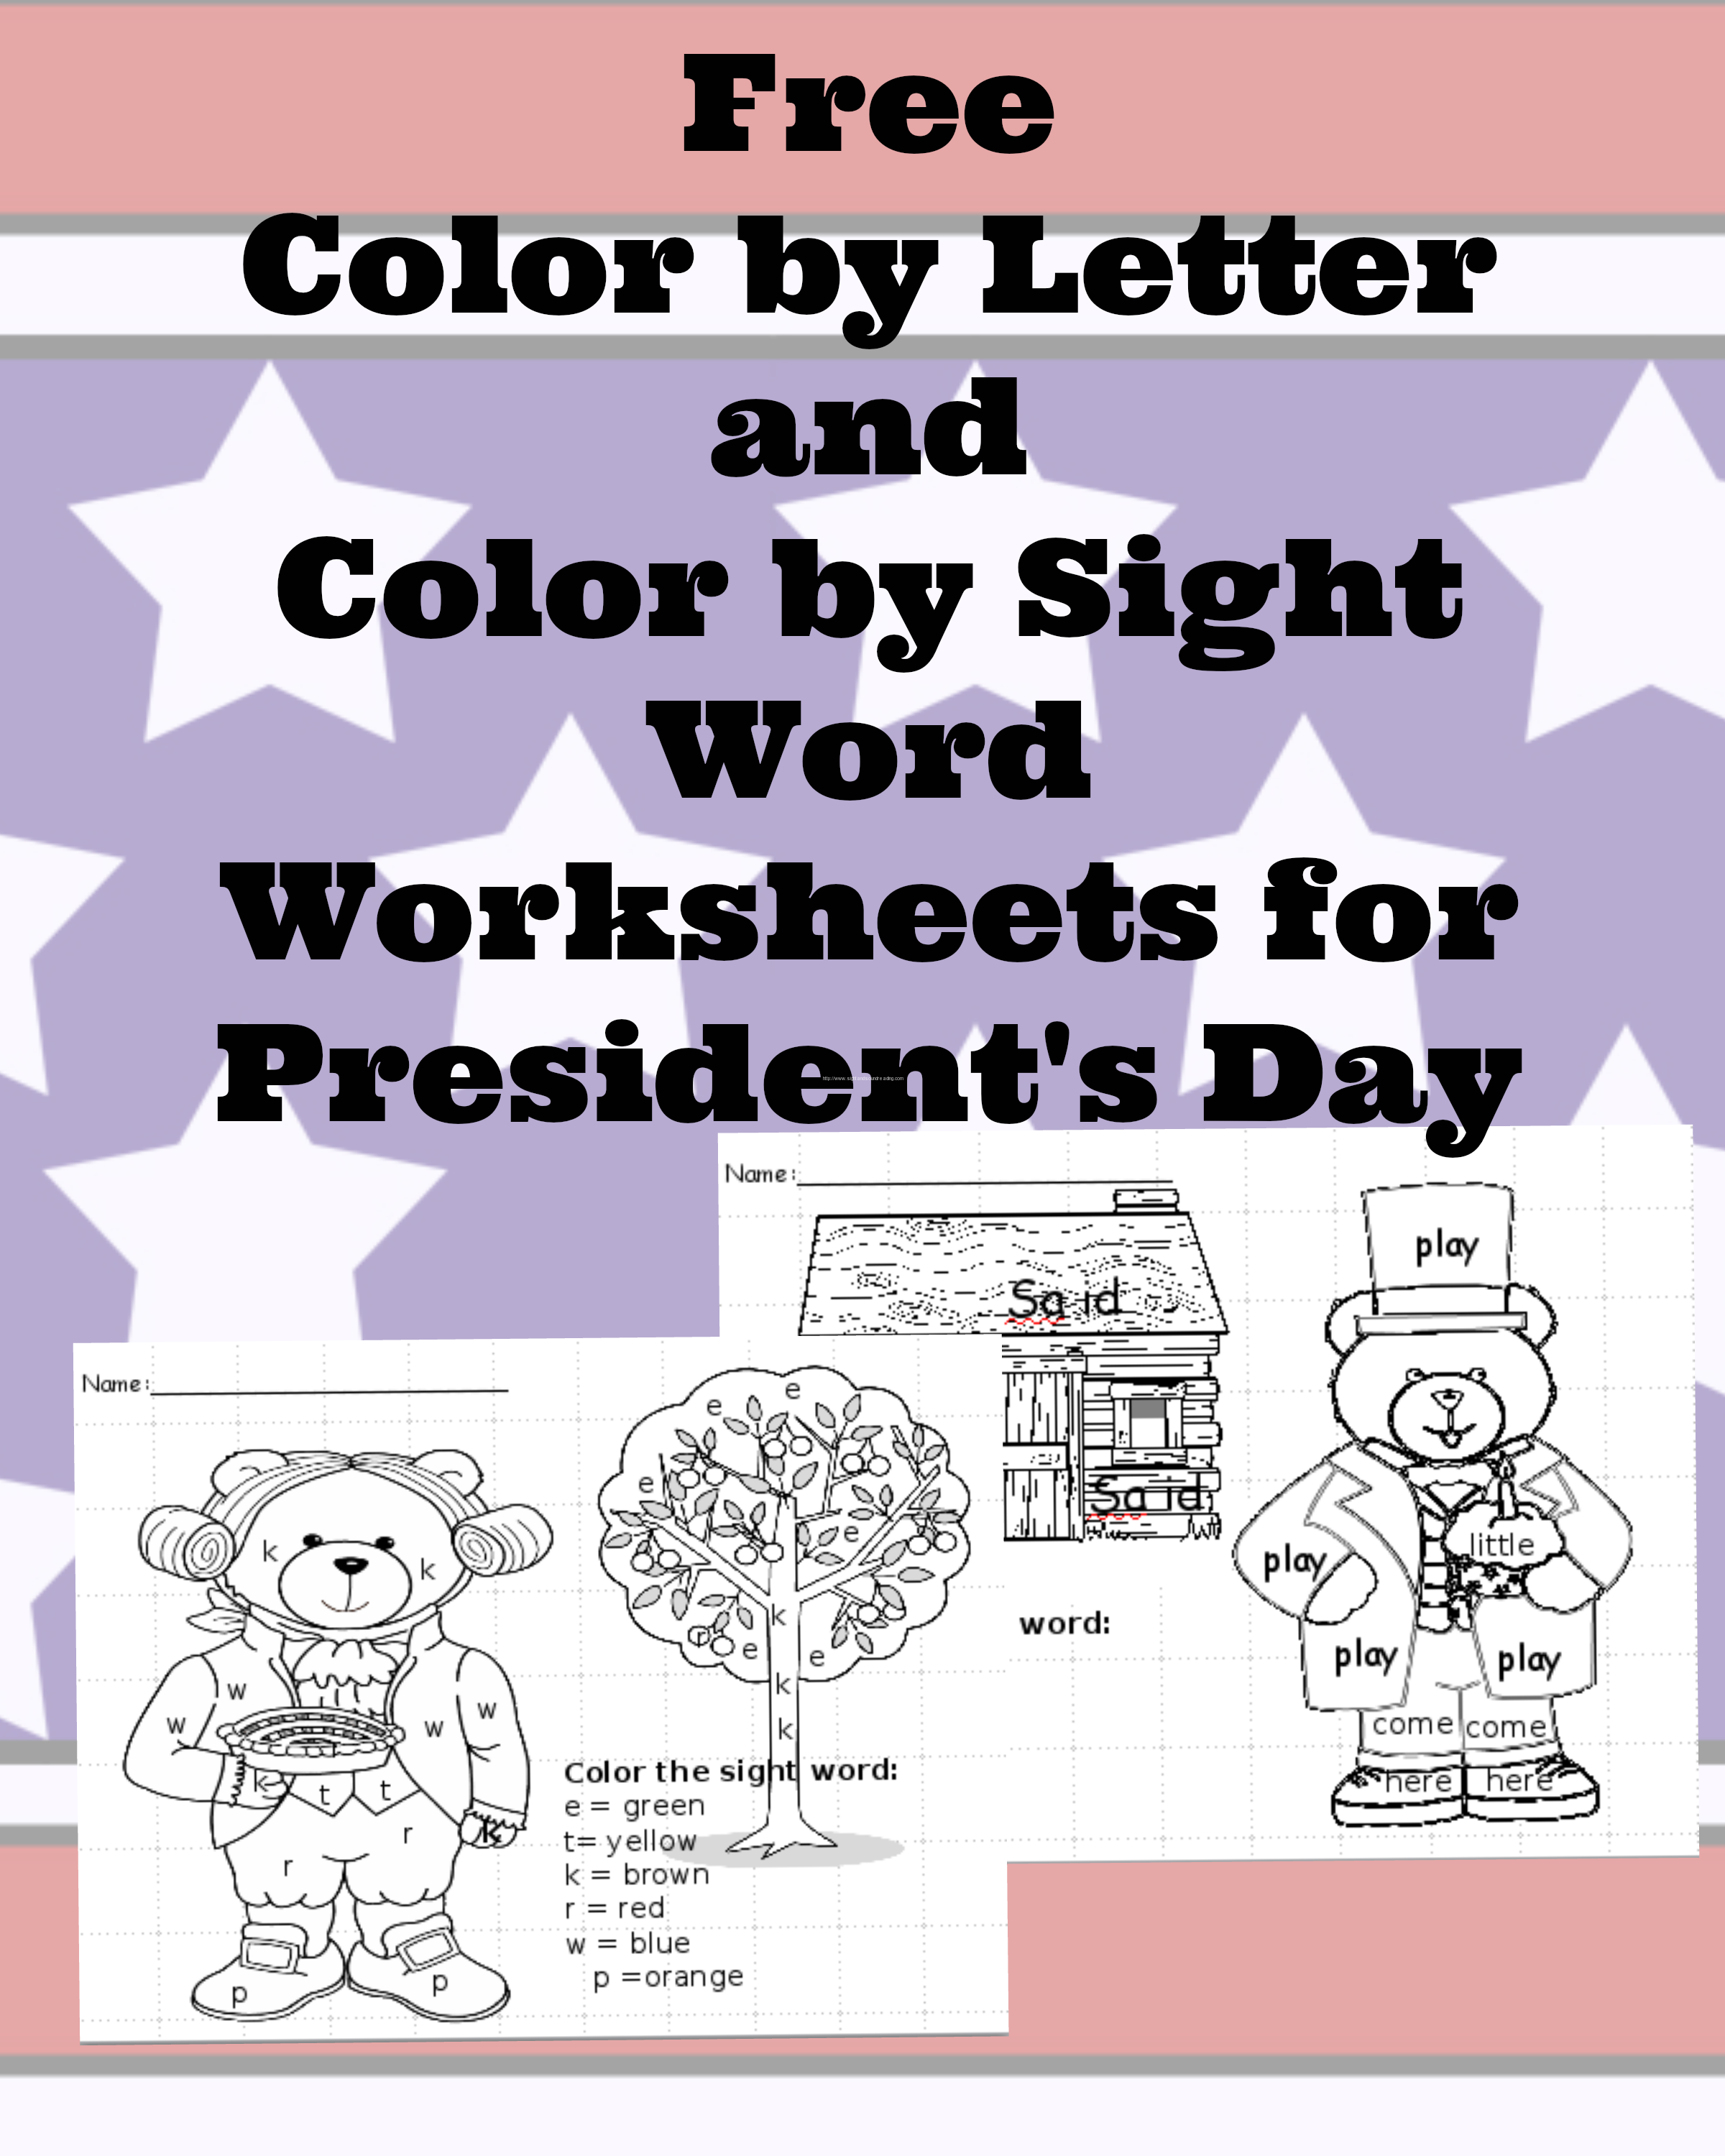 worksheet George Washington Worksheets presidents day worksheets for preschool or kindergarten you can see from the above image we have an abe lincoln and a george washington bear has sight words on h